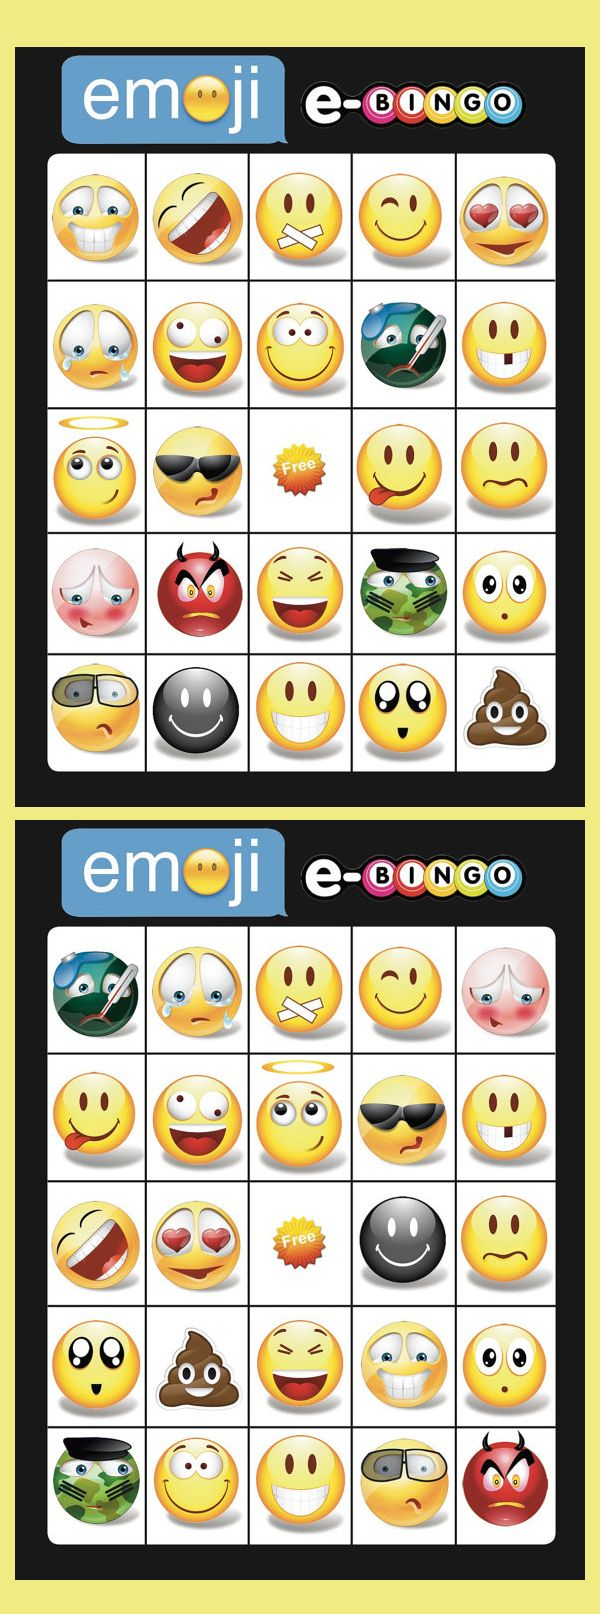 Emoji Bingo Cards 14 Unique Cards With Extra Large Calling Cards For Little Hands Instant Digital Download Affiliate With Images Emoji Party